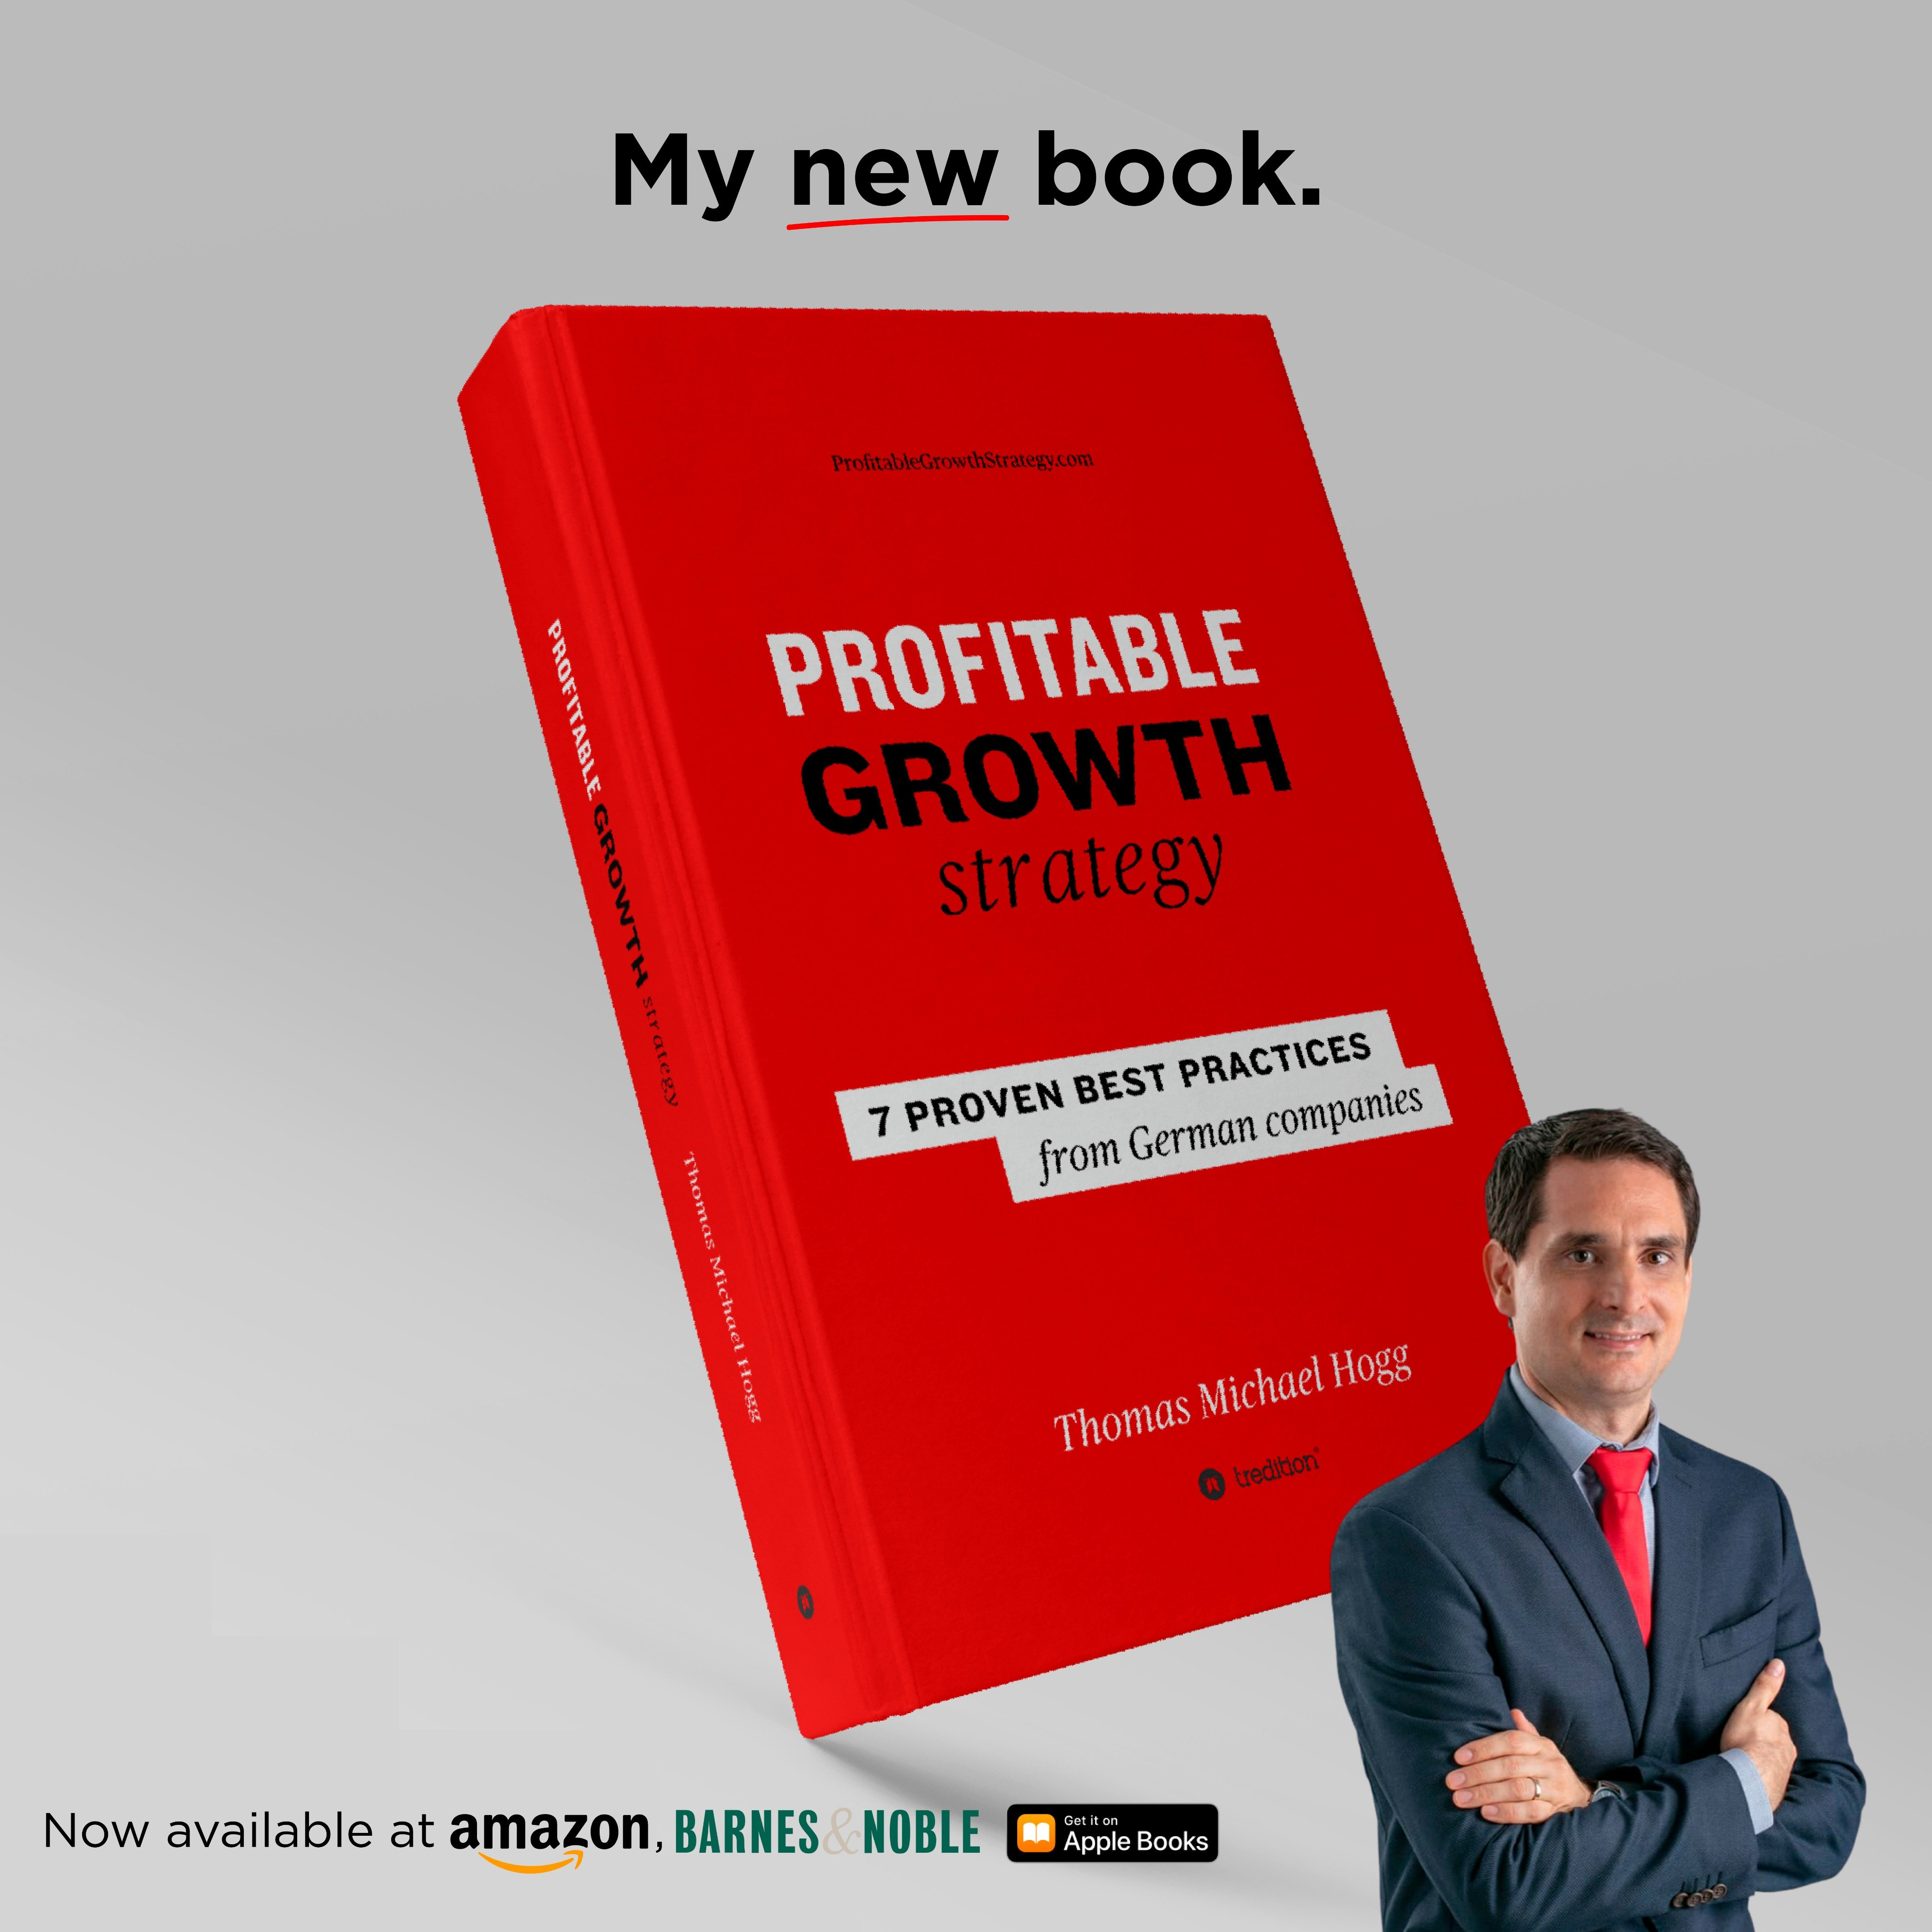 profirable growth strategy by thomas hogg